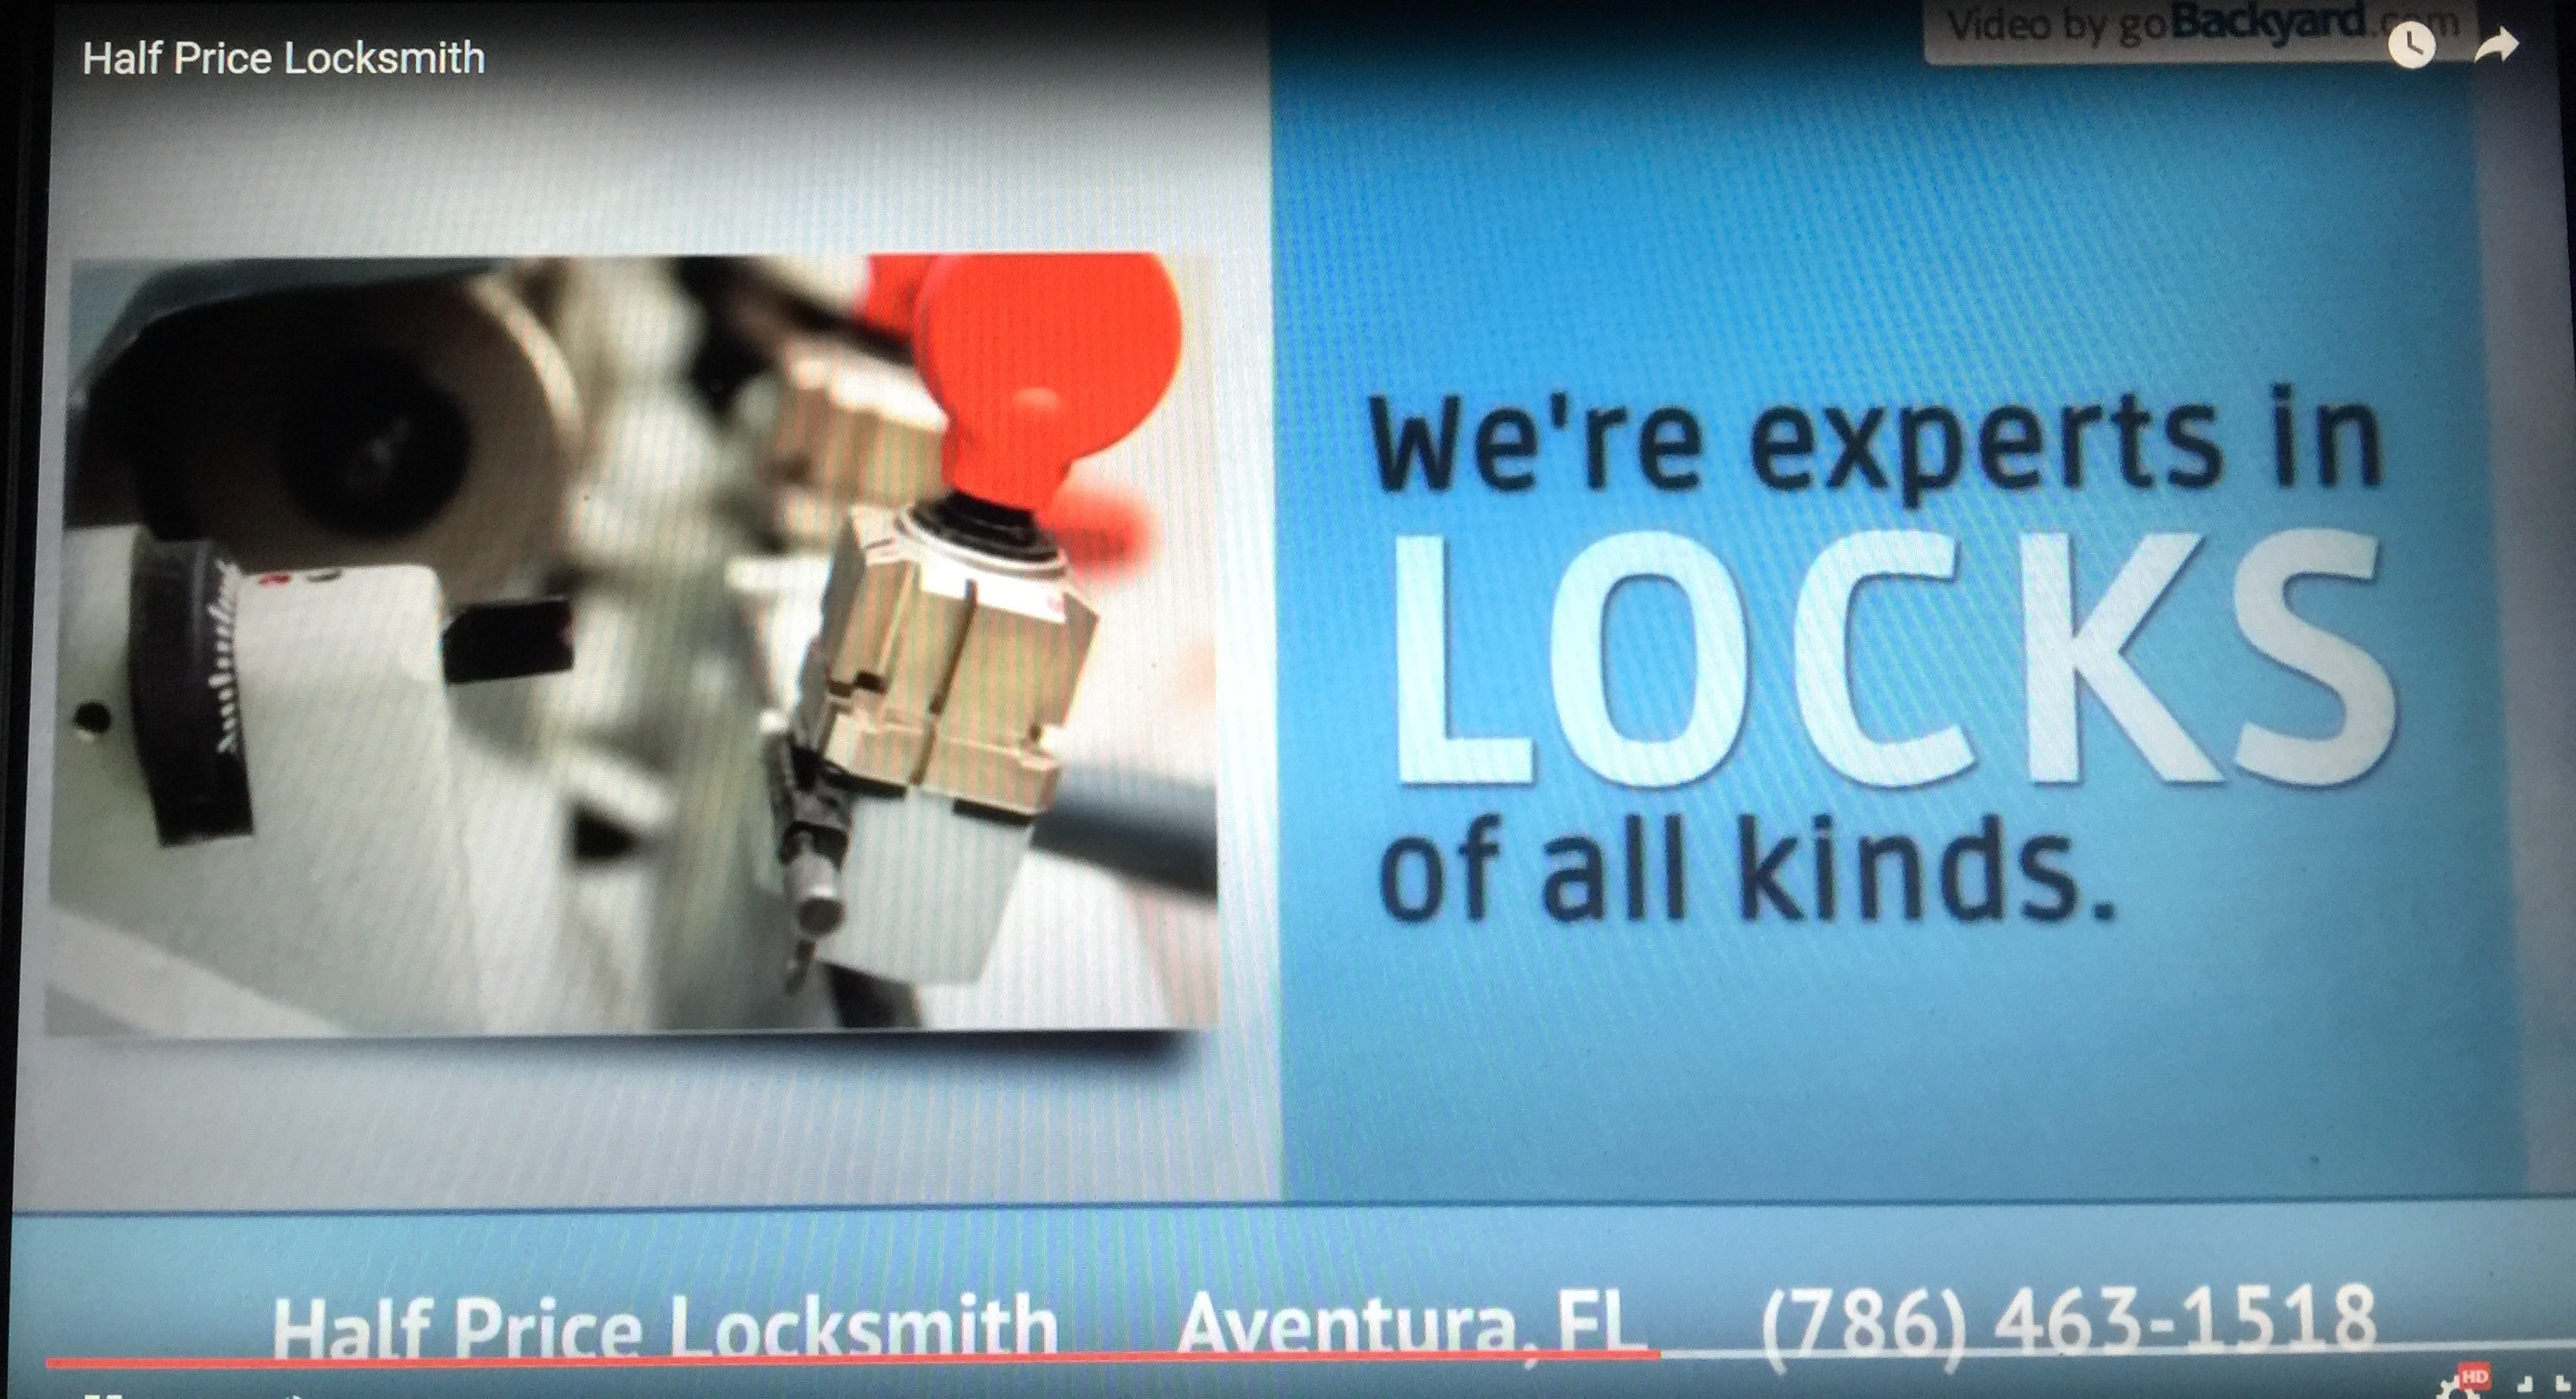 Locksmith in hollywood fl